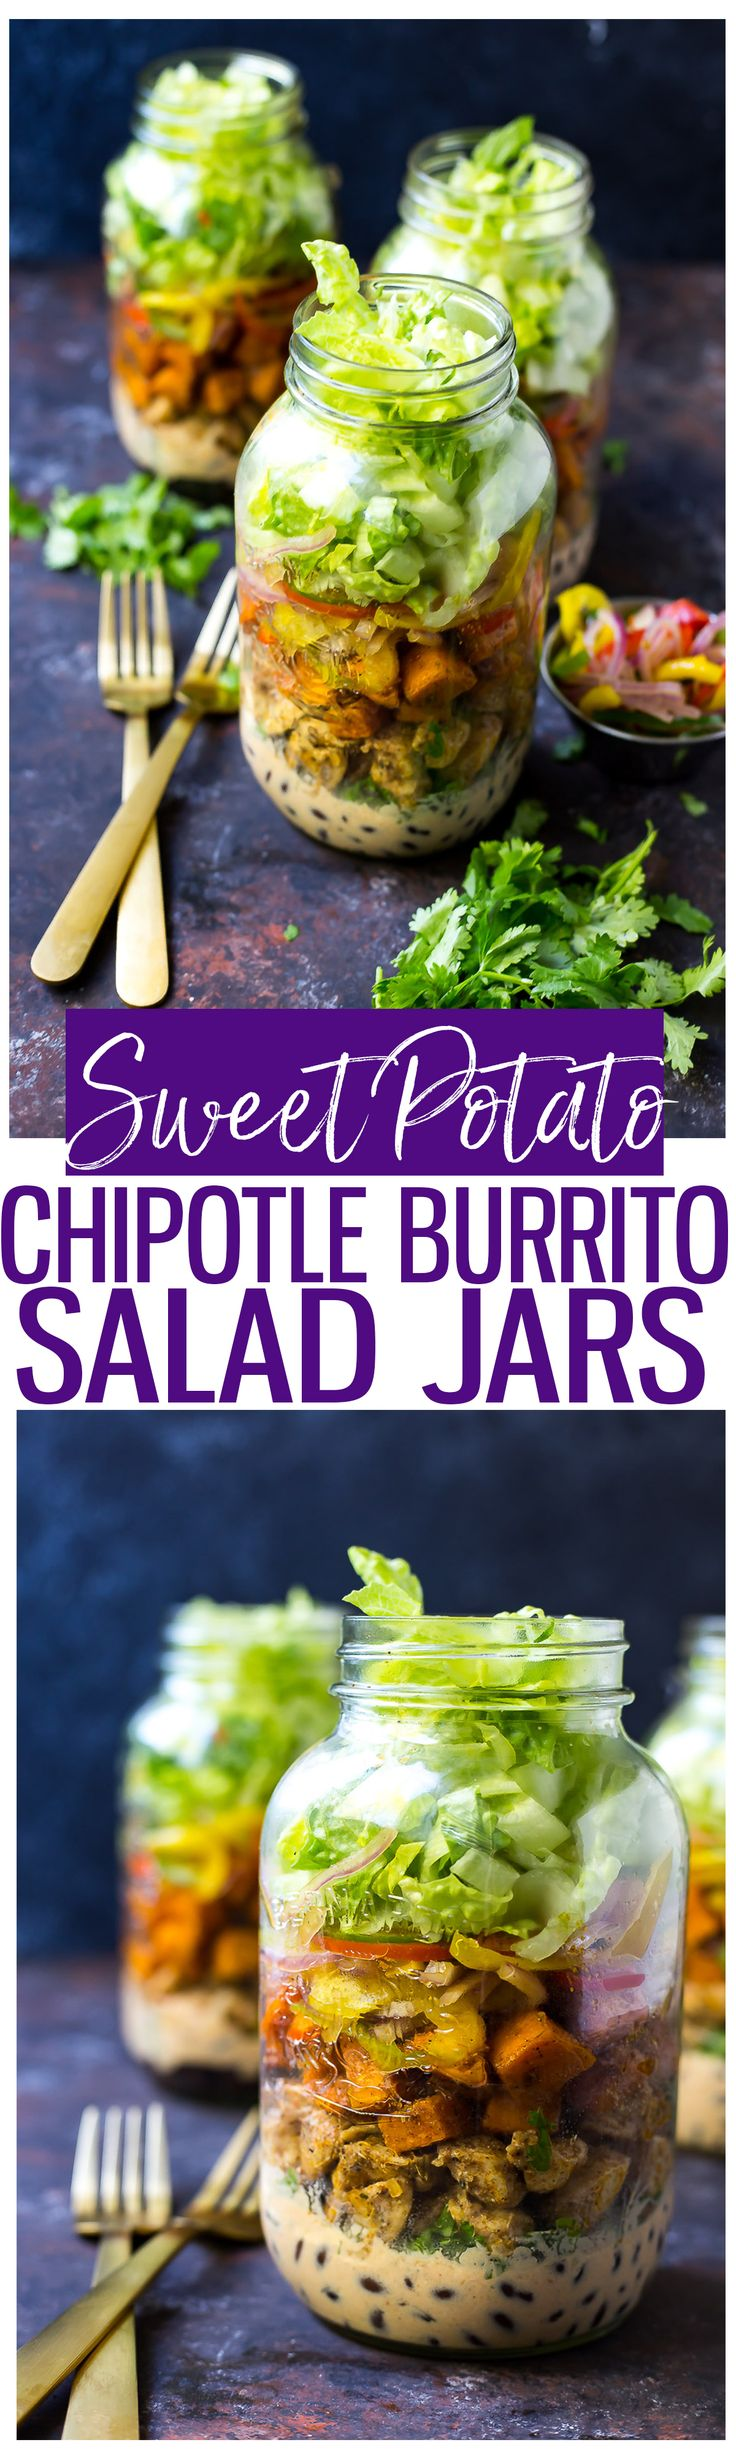 Sweet Potato Chipotle Chicken Burrito Jars are full of delicious southwest flavours and protein – they're also a tasty low-carb lunch you can take with youon-the-go!